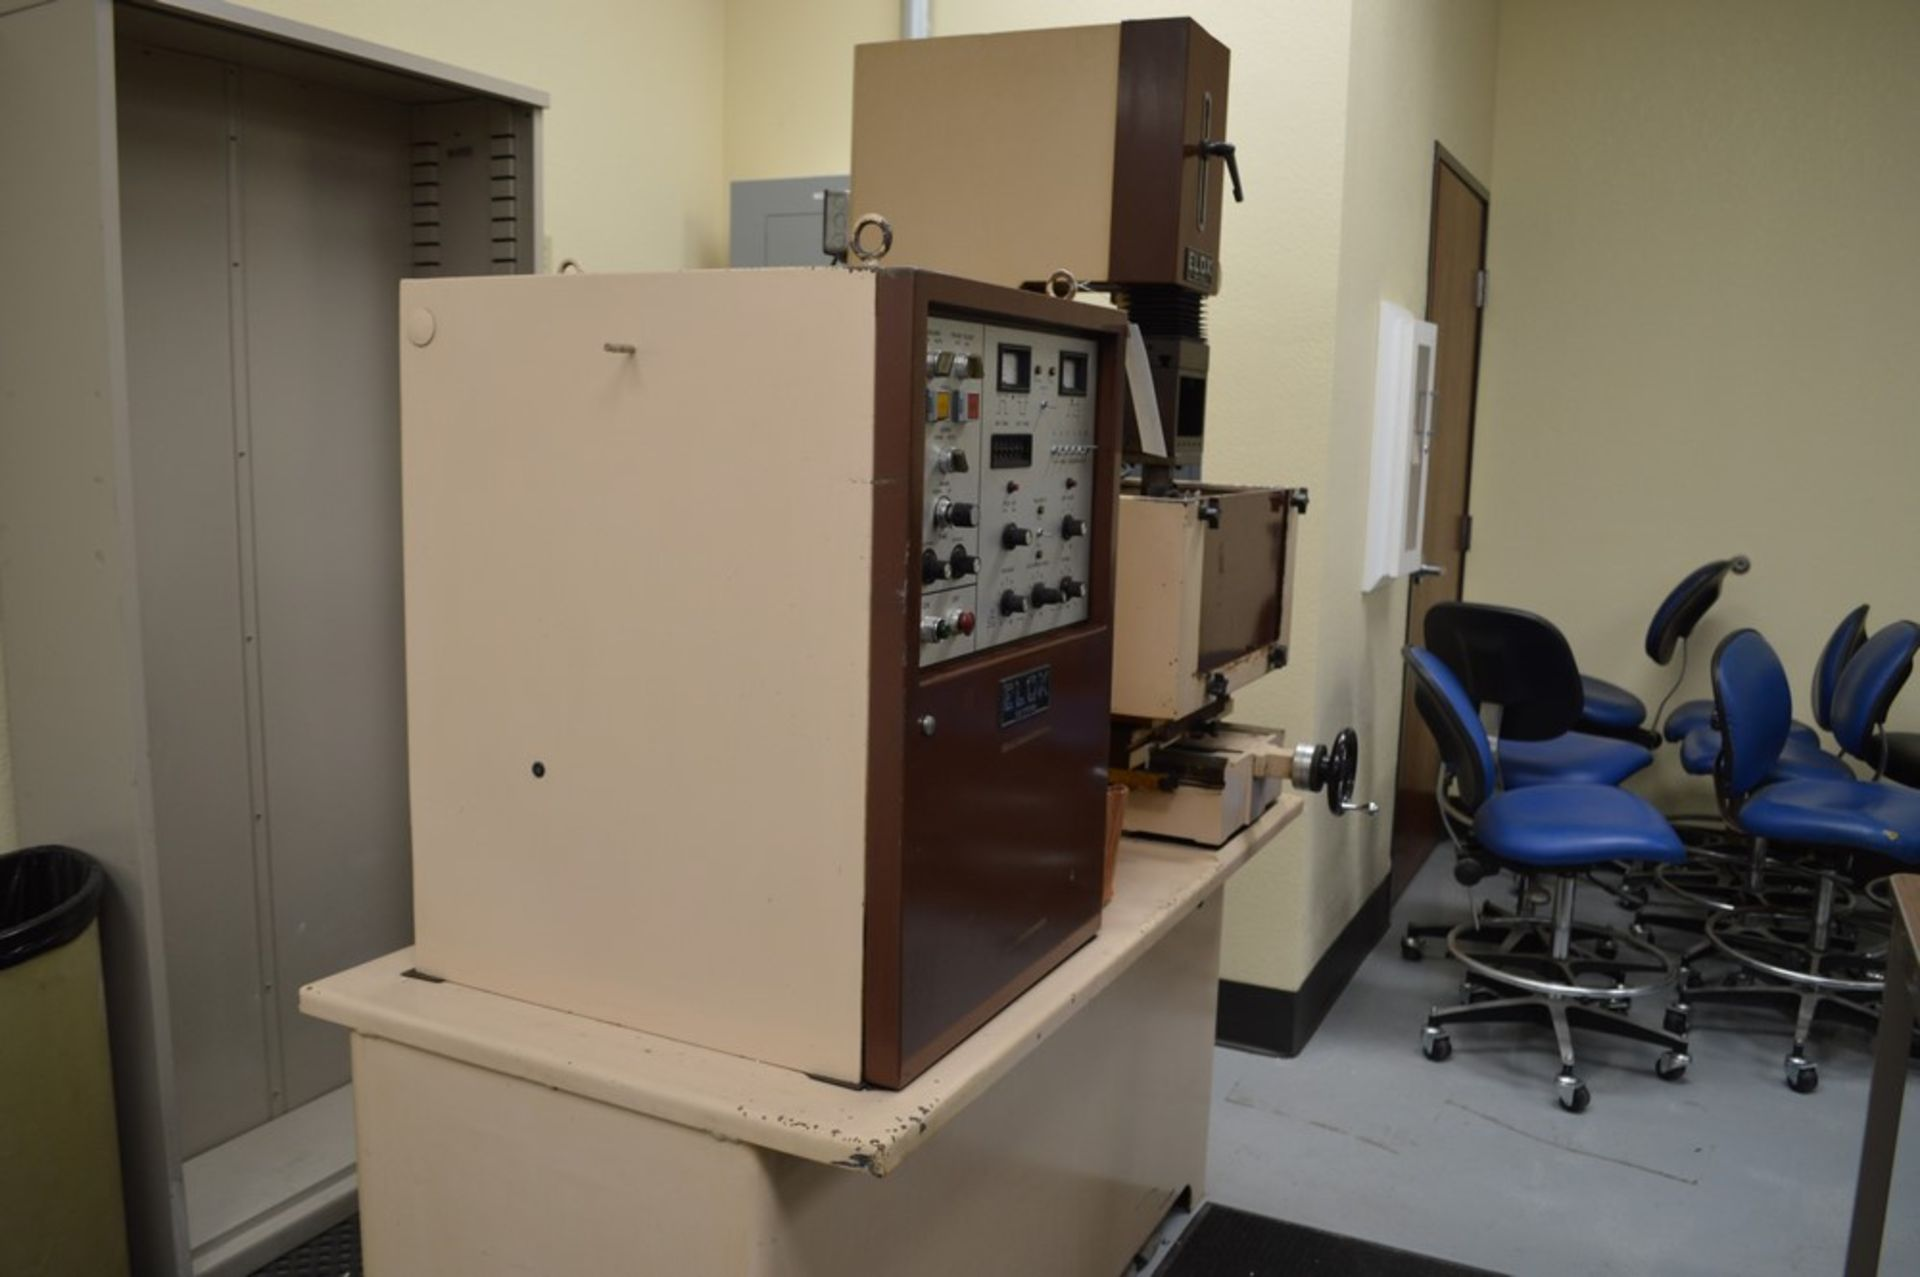 Elox small hole Plunge EDM Systems submersible EDM, Analam mini wizard DRO, benchtop model, 16 x 8 - Image 8 of 8